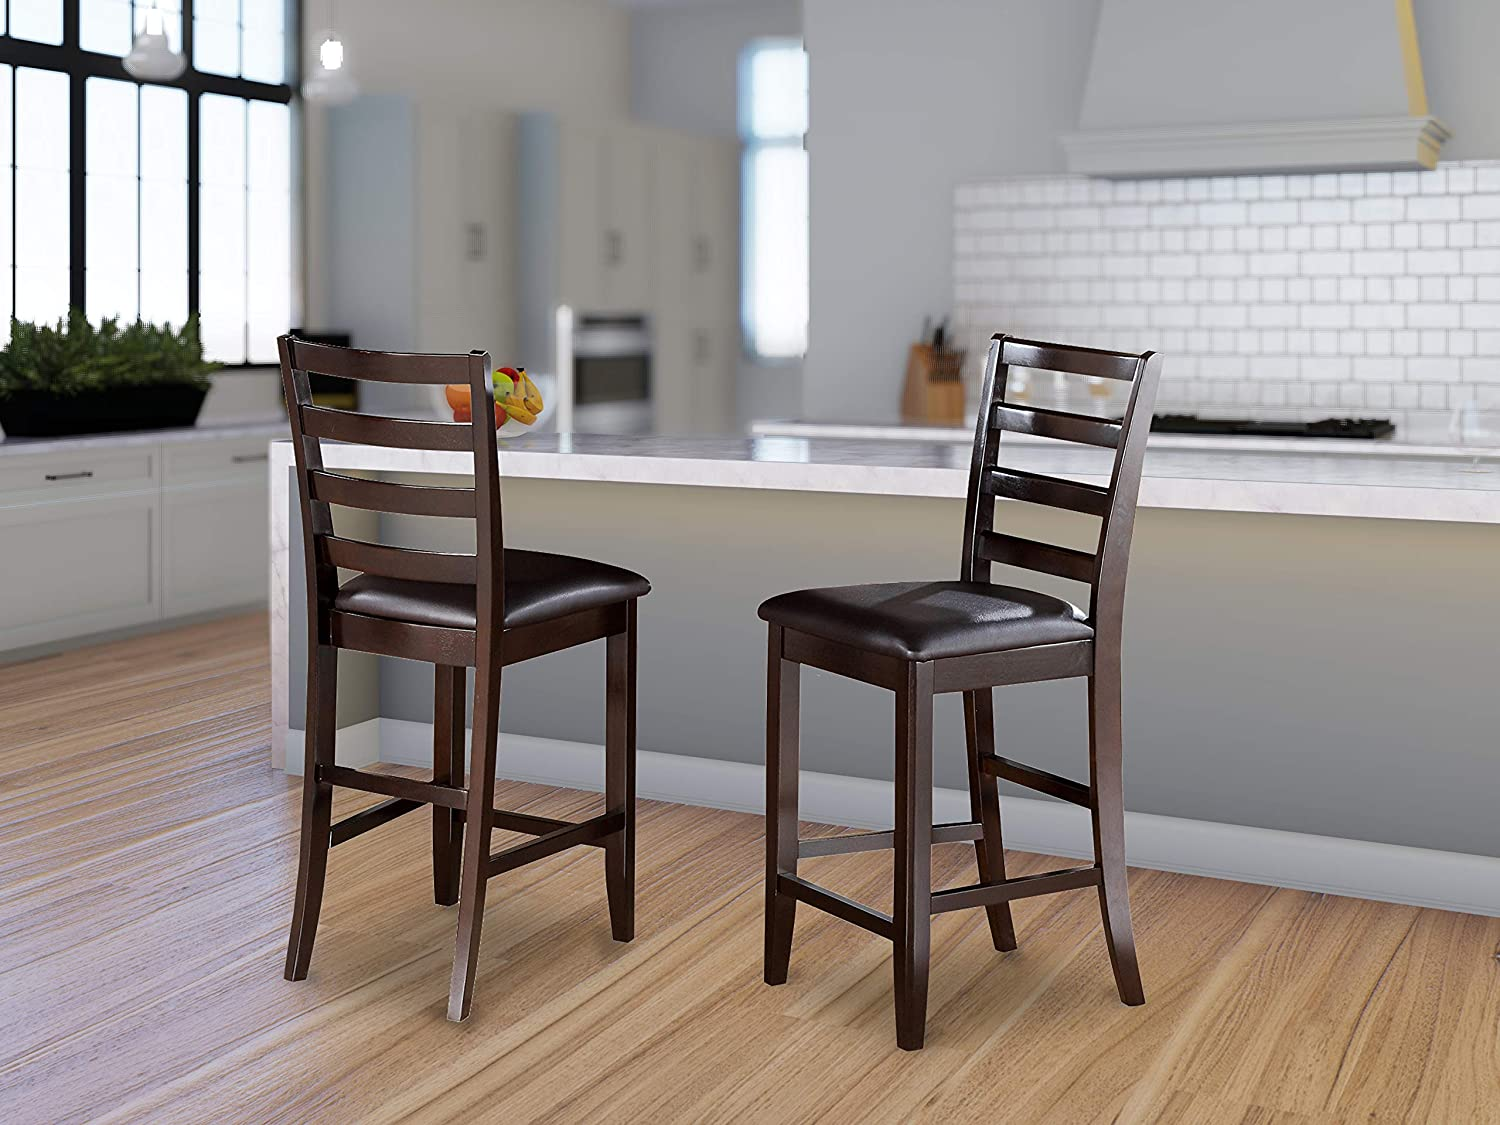 East-West Furniture Fairwinds counter height dining chairs-Faux Leather Seat and Cappuccino Hardwood Frame bar stools set of 2